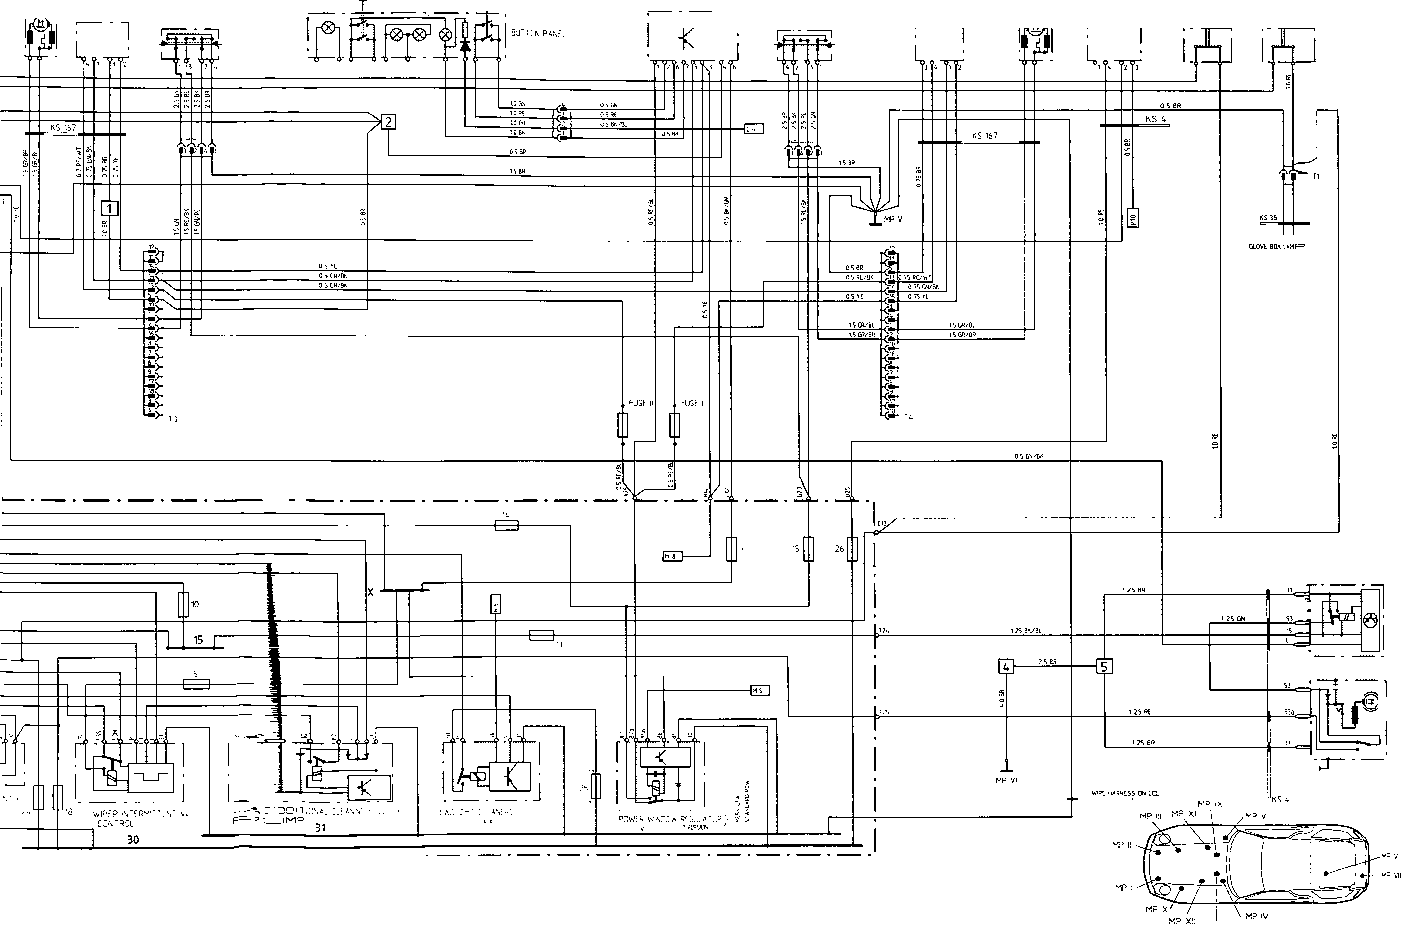 nissan diagrams   nissan elgrand e51 wiring diagram